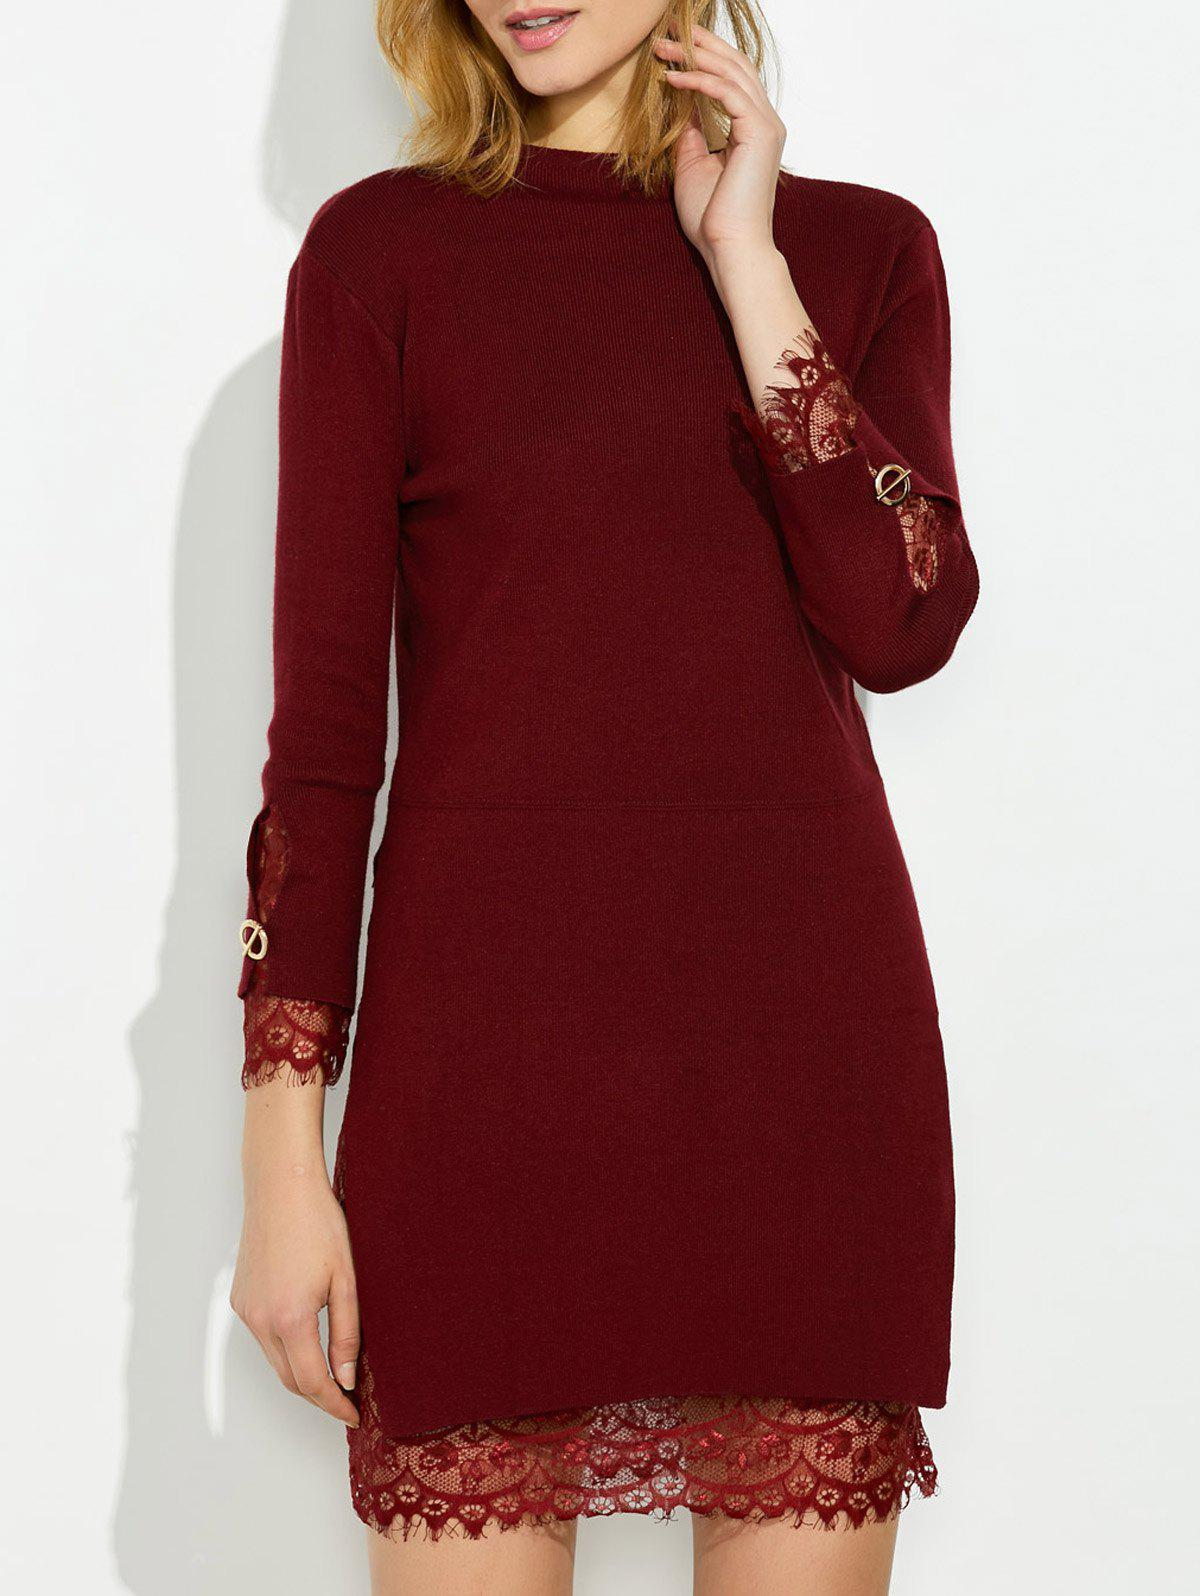 Mock Neck Knitted Layered Sweater Dress With Lace Trim mock neck floral embroidered sweater